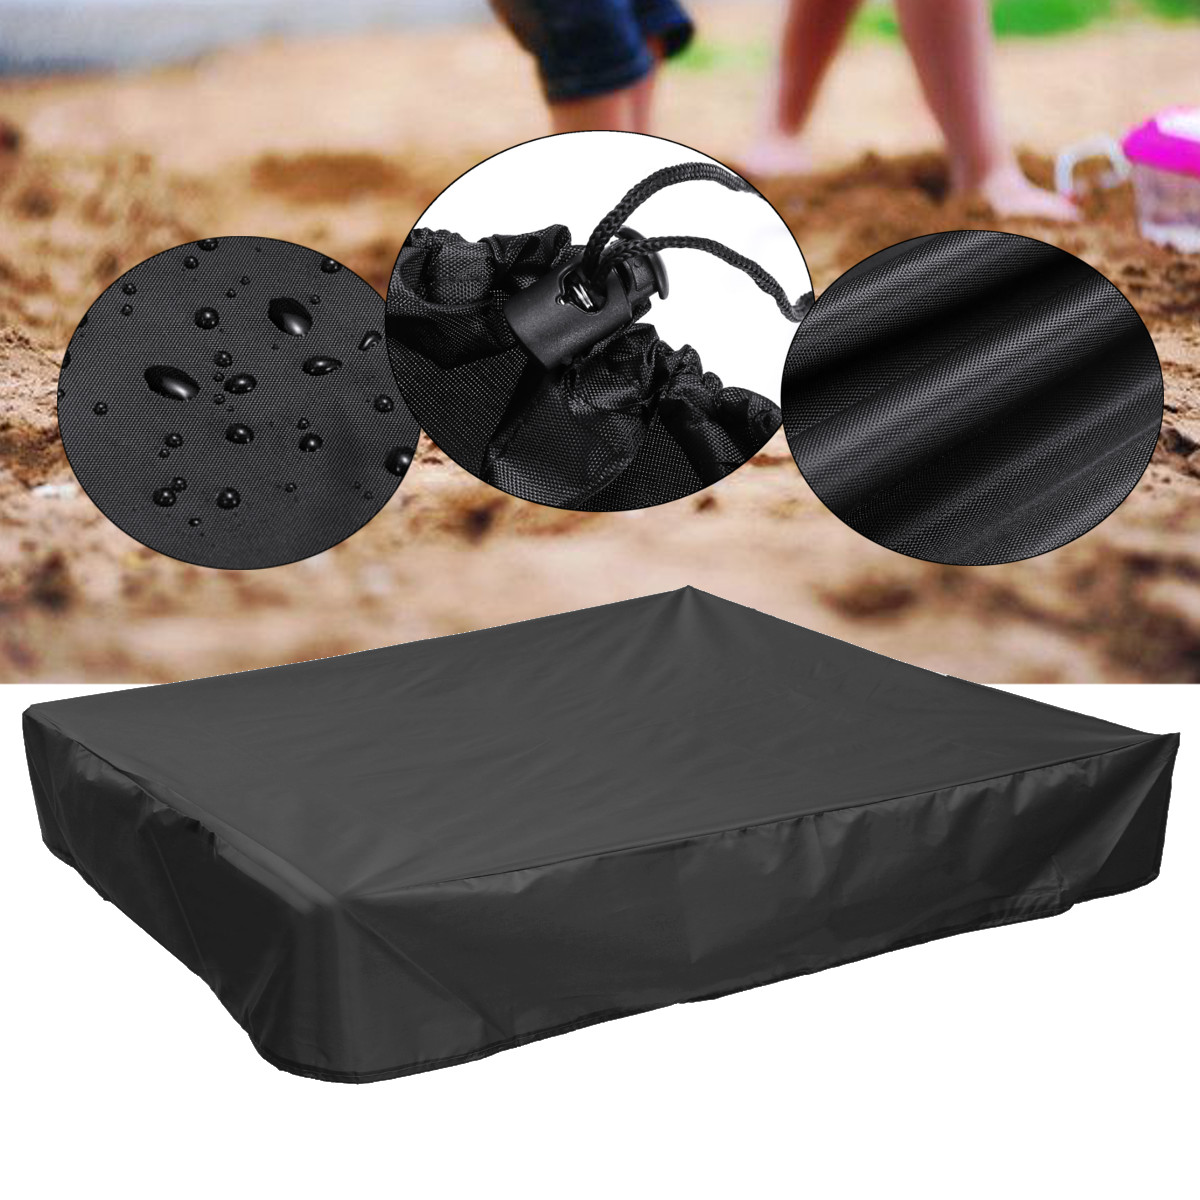 Square Garden Oxford Sandbox Sandpit Dust Cover Multifunction Dustproof Waterproof Canopy Shelter With Drawstring 4 Sizes Black